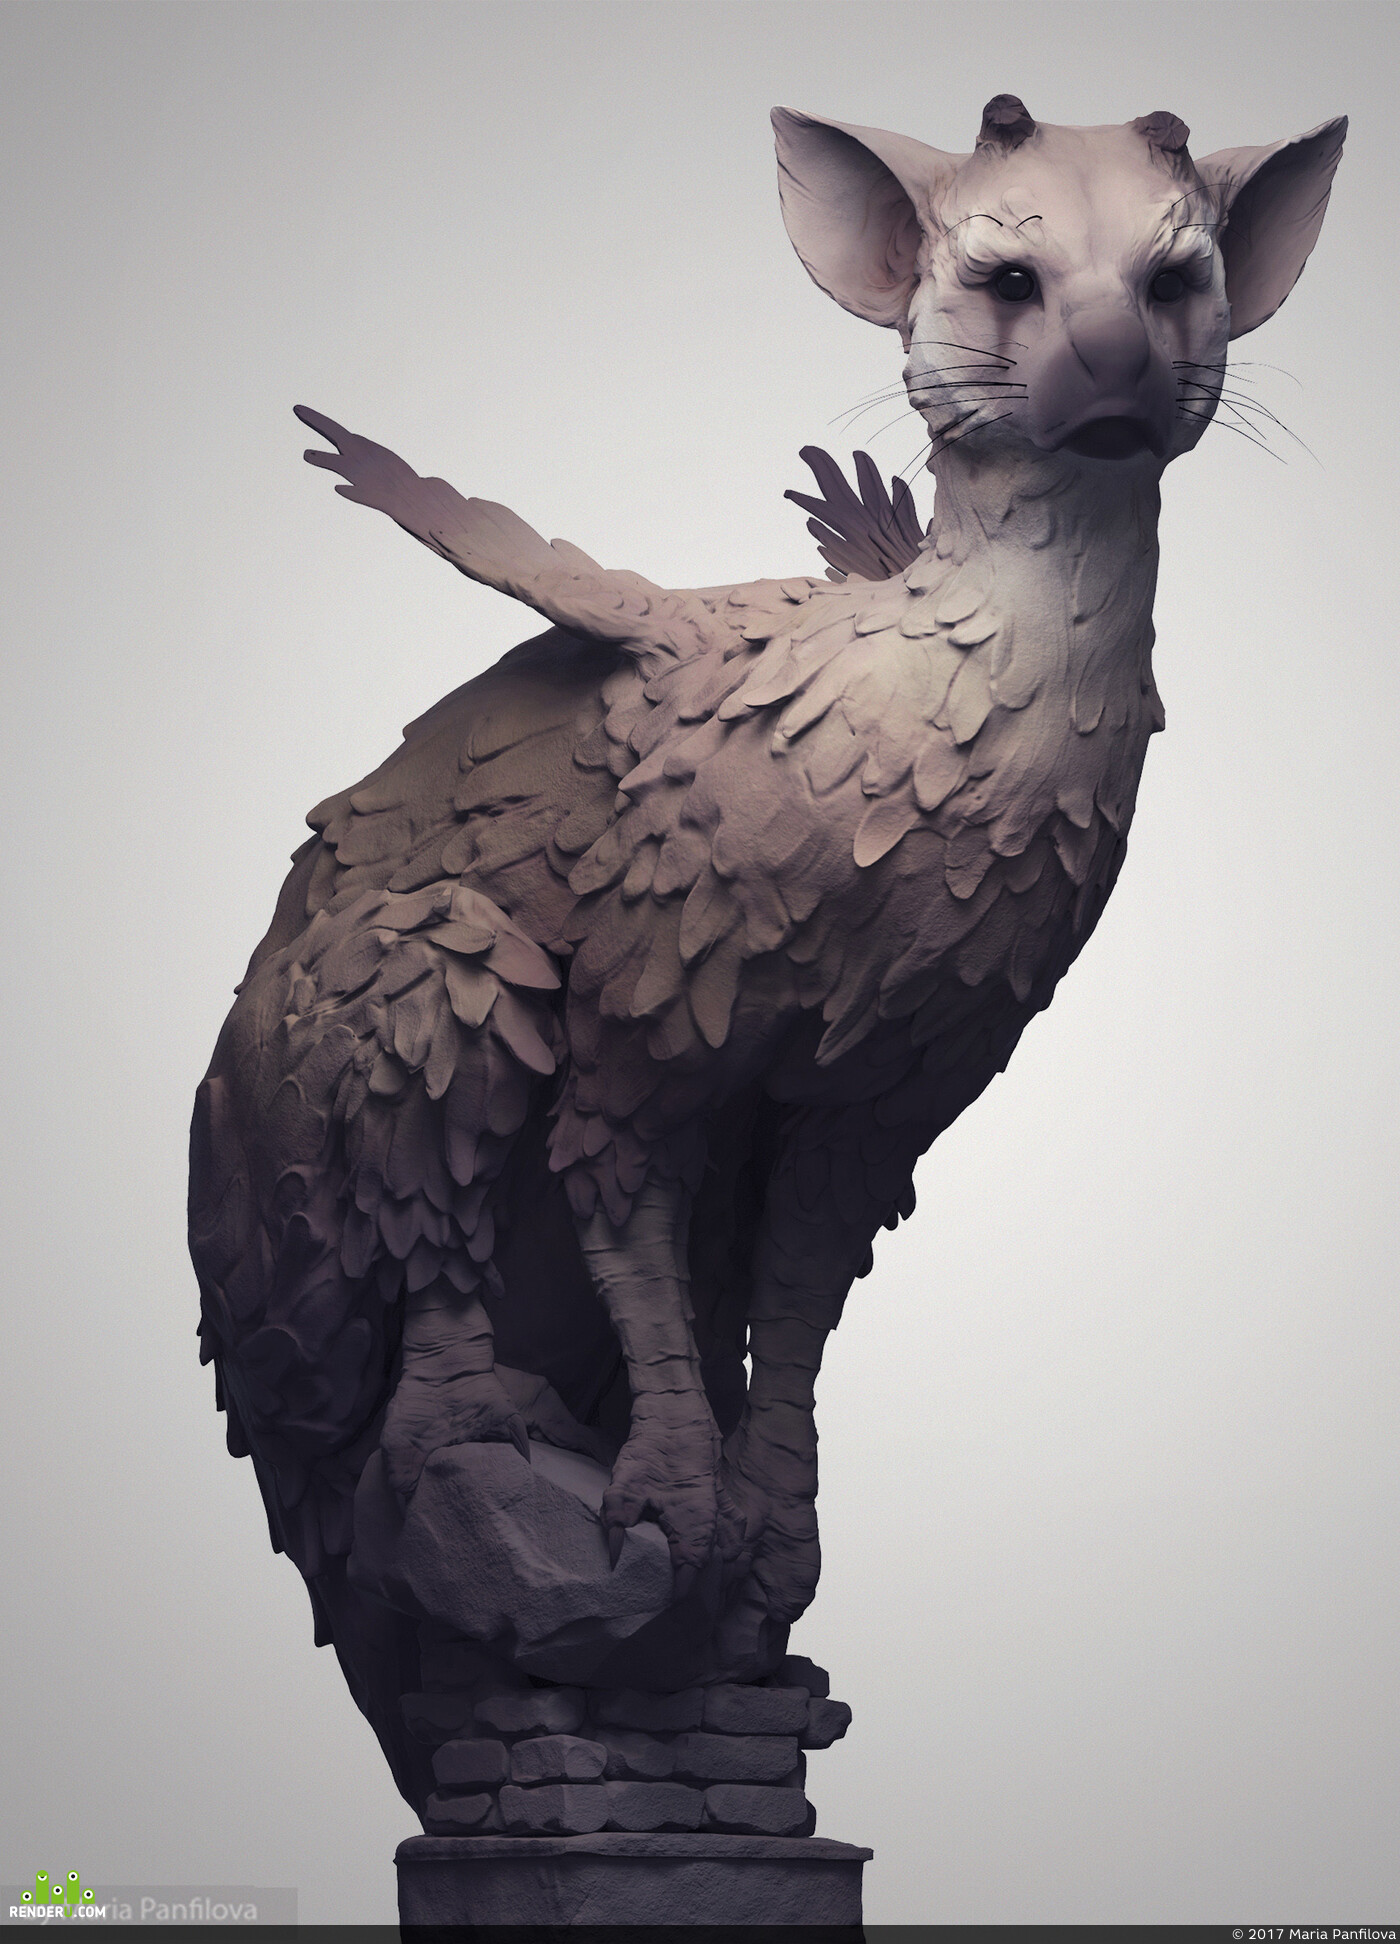 Trico, Last guardian, creature, animal, beast, Japan